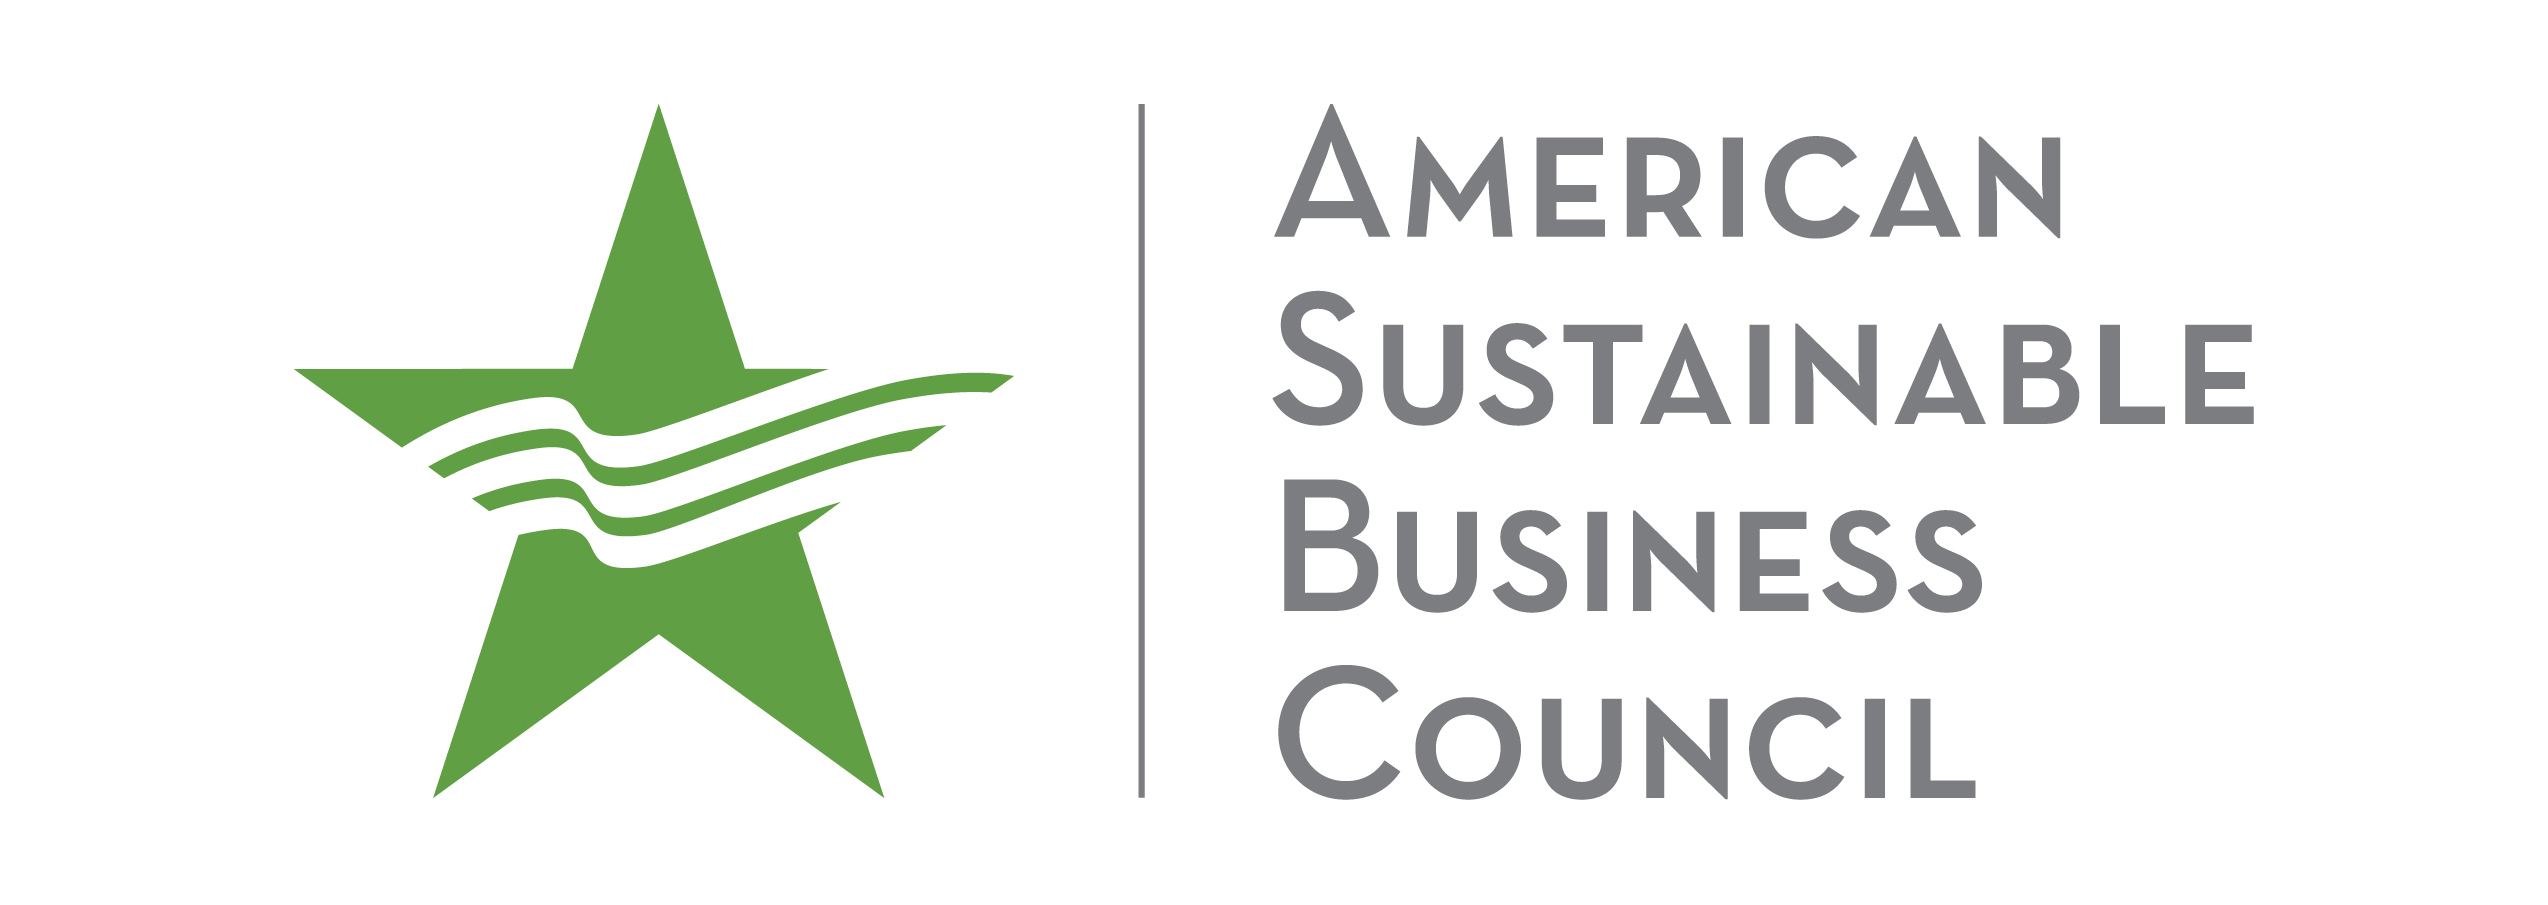 American Sustainable Business Council Logo